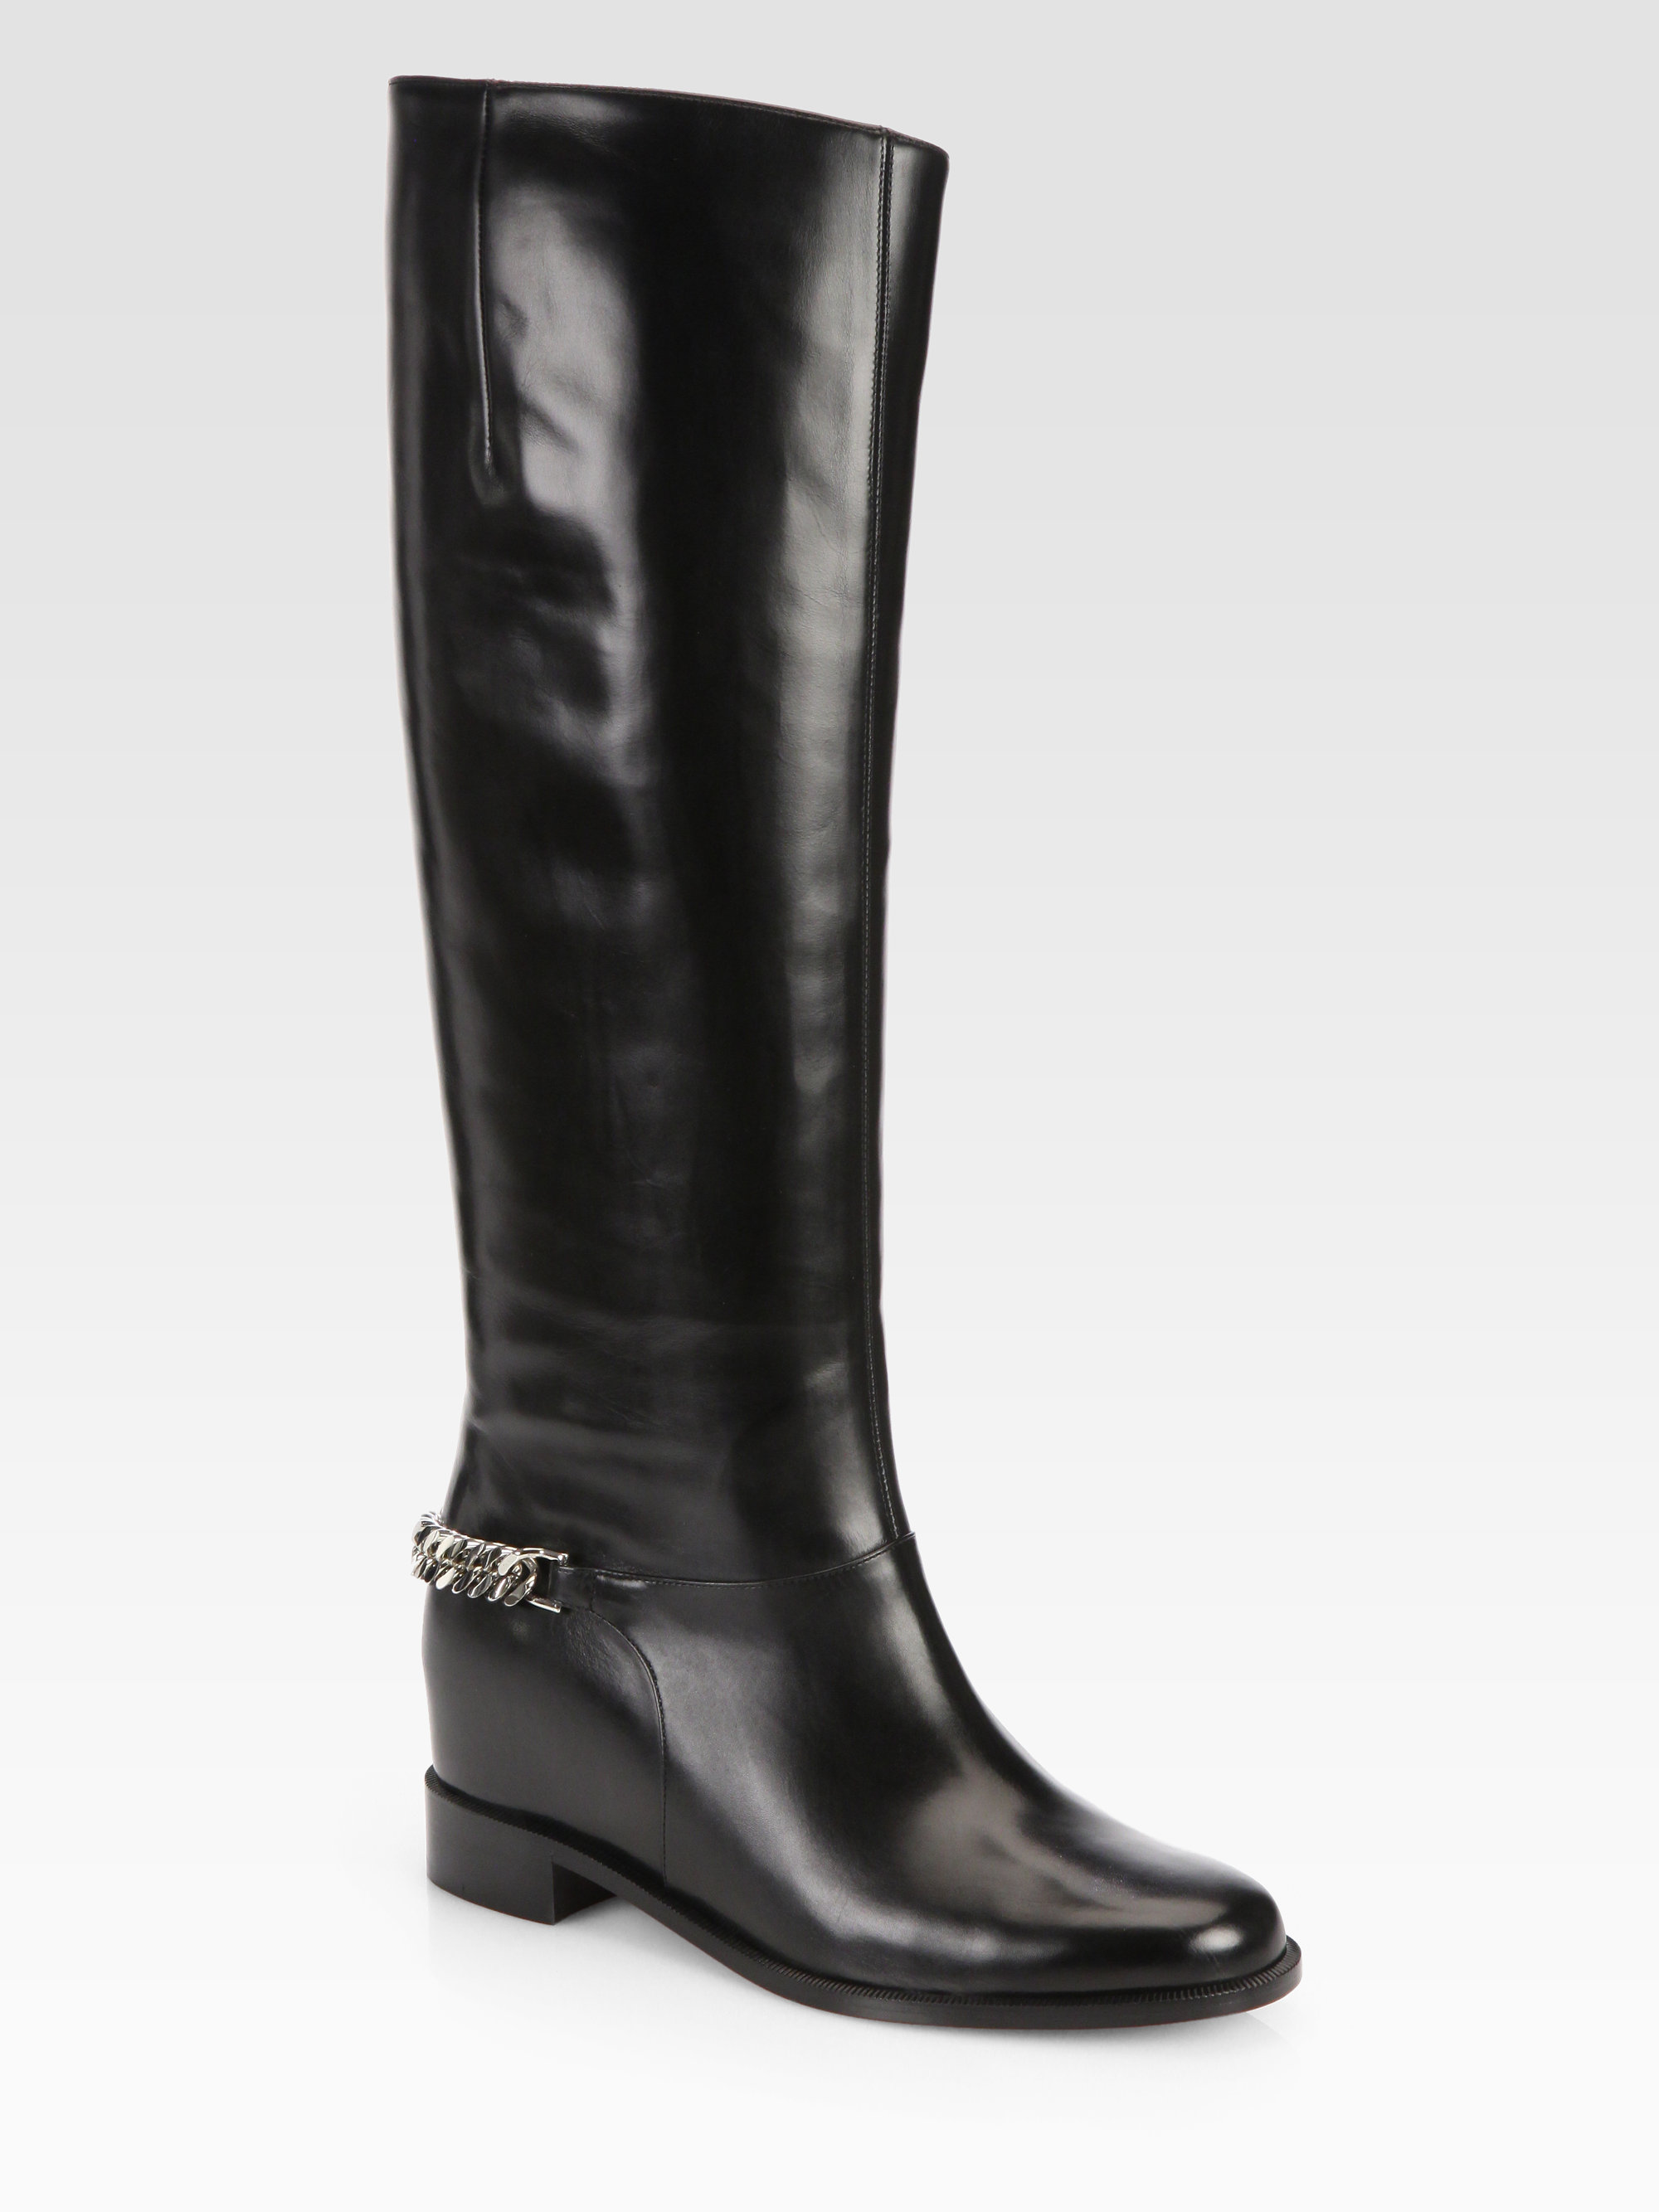 christian louboutin knee-high chain-link boots